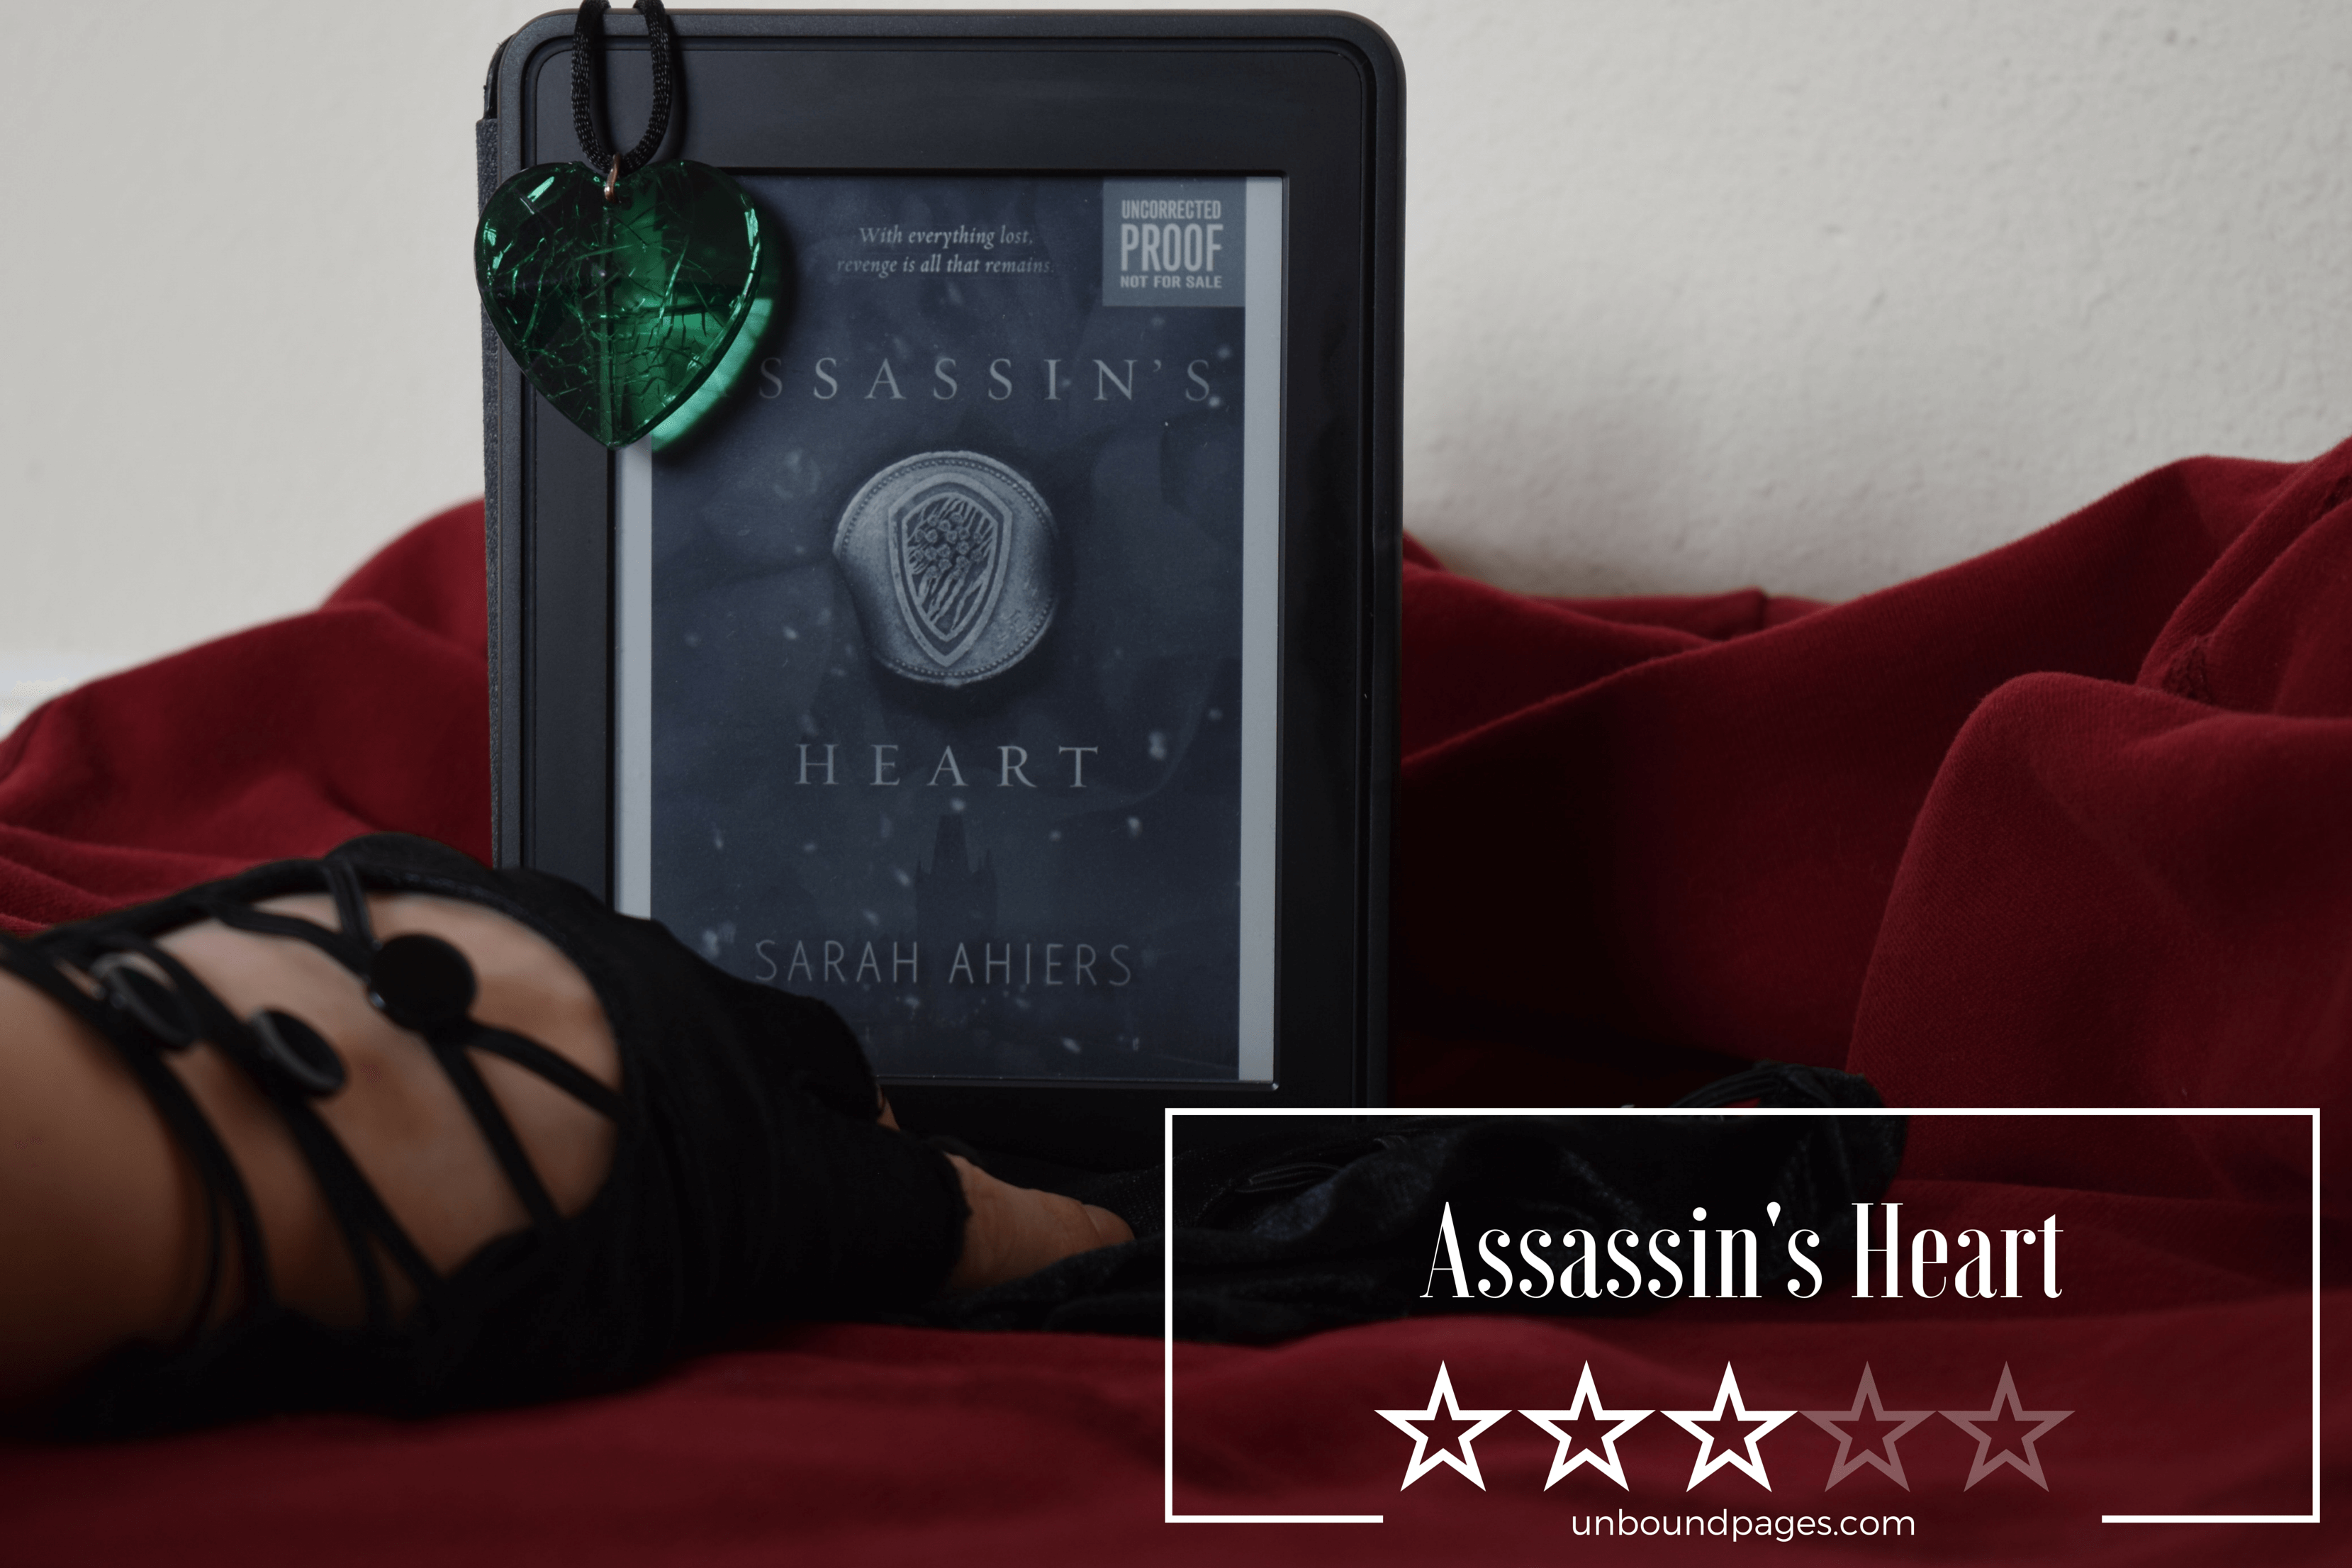 Assassin's Heart was an interesting story with a crime-mob family feel to it, but the plot line was a bit slow for me - unboundpages.com